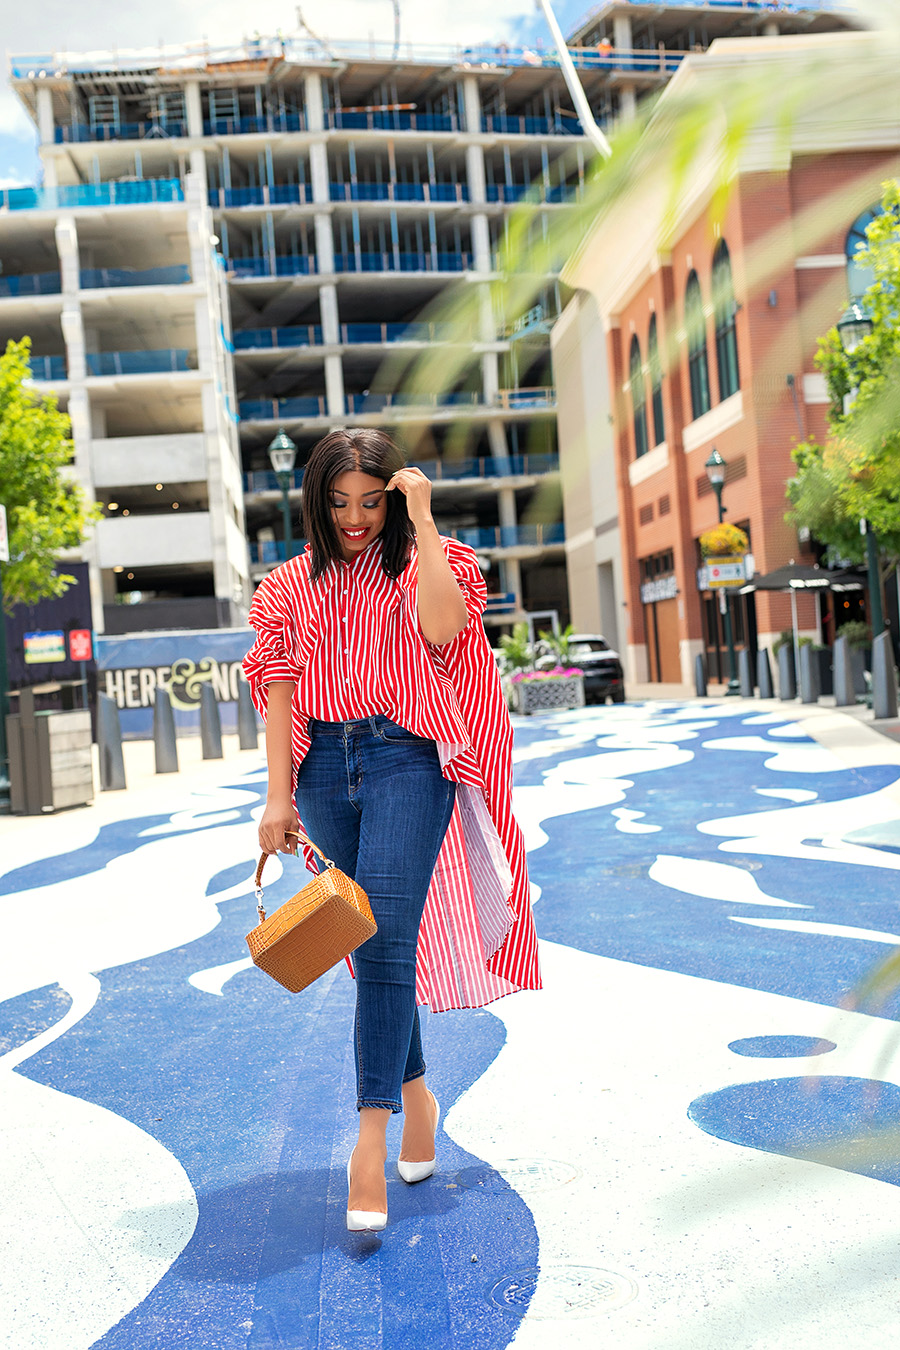 A girl in red and white long stripe shirt with blue jeans strolling in the city